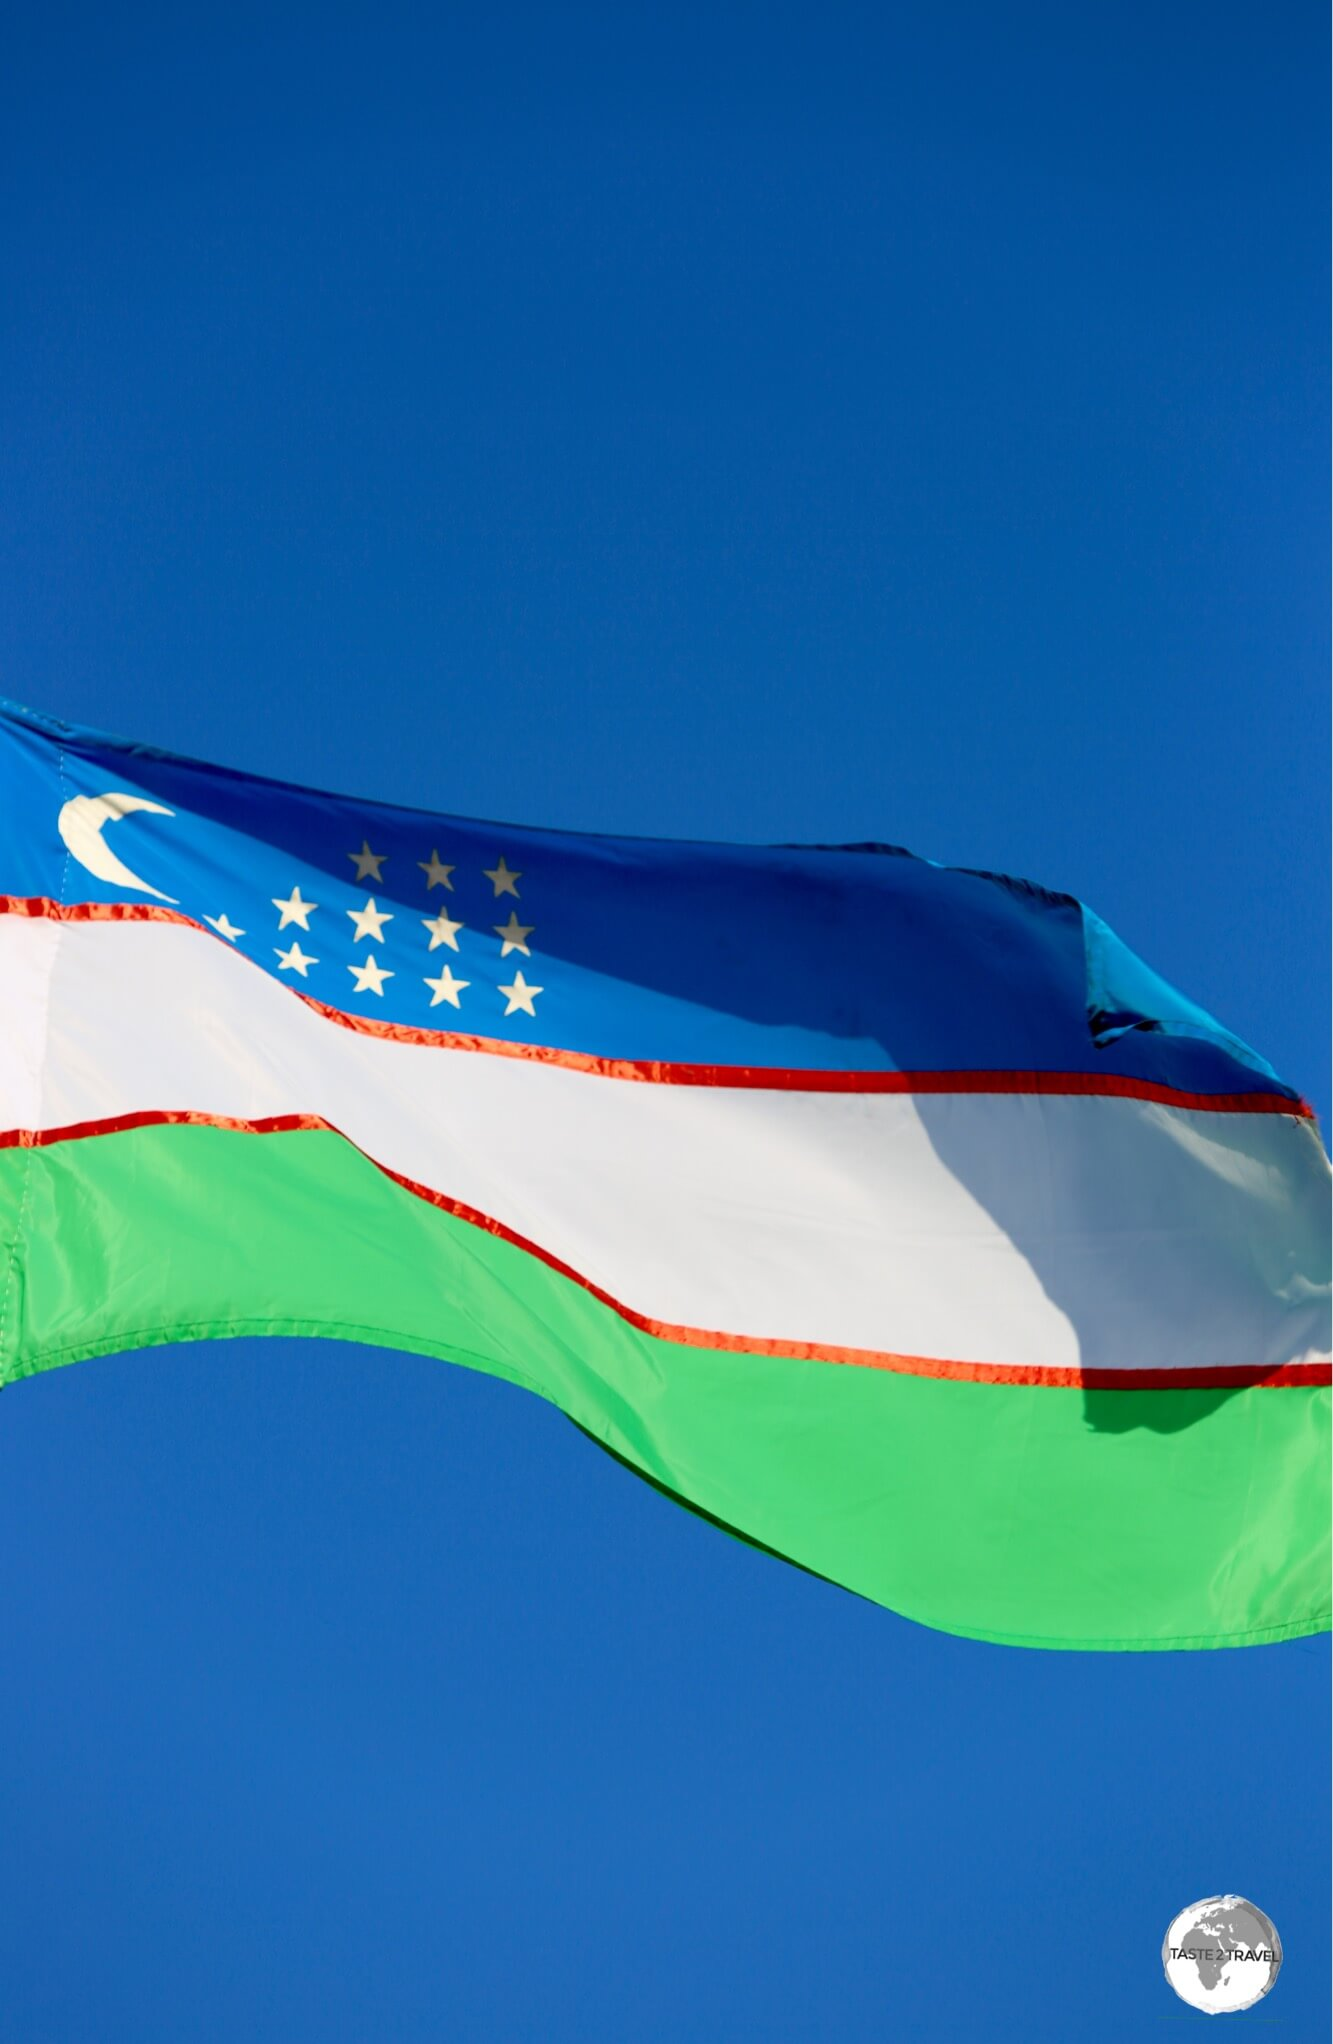 The flag of Uzbekistan flying in Khiva.